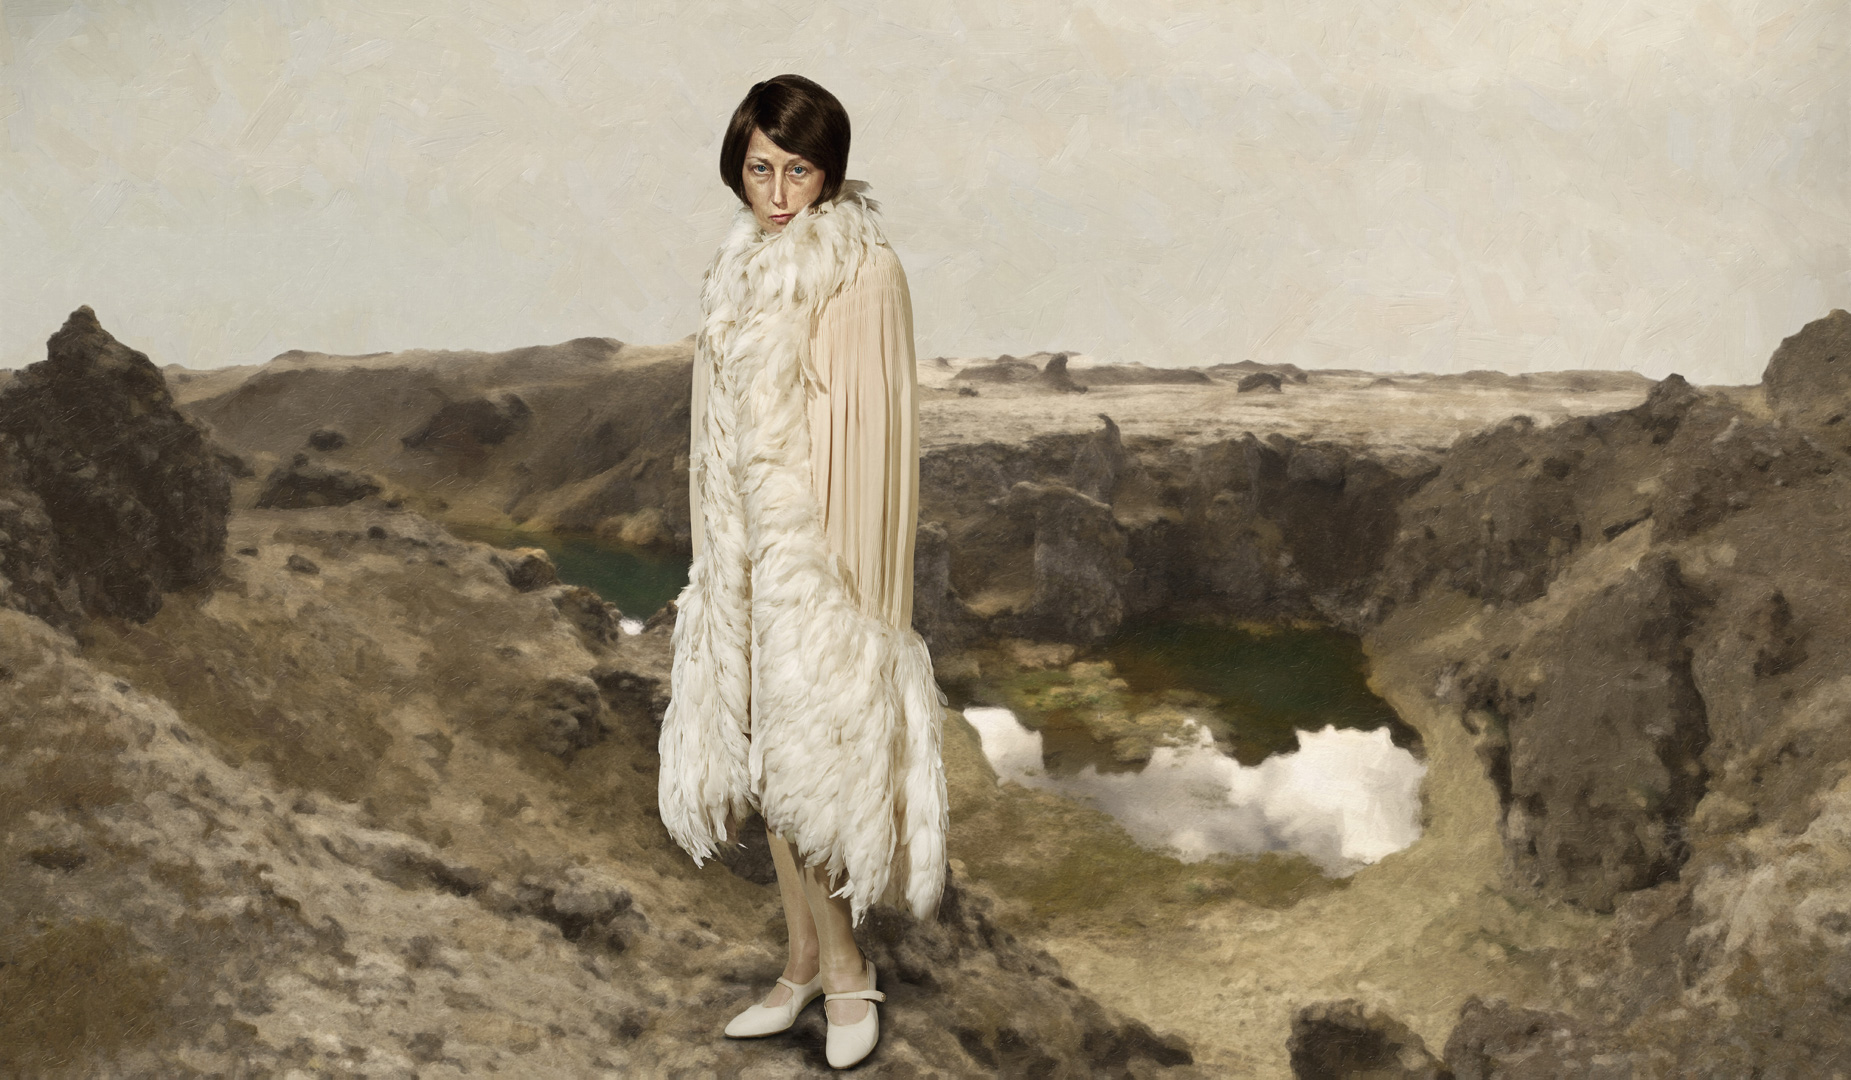 Cindy Sherman - Untitled #512, 2010/2011, chromogenic color print